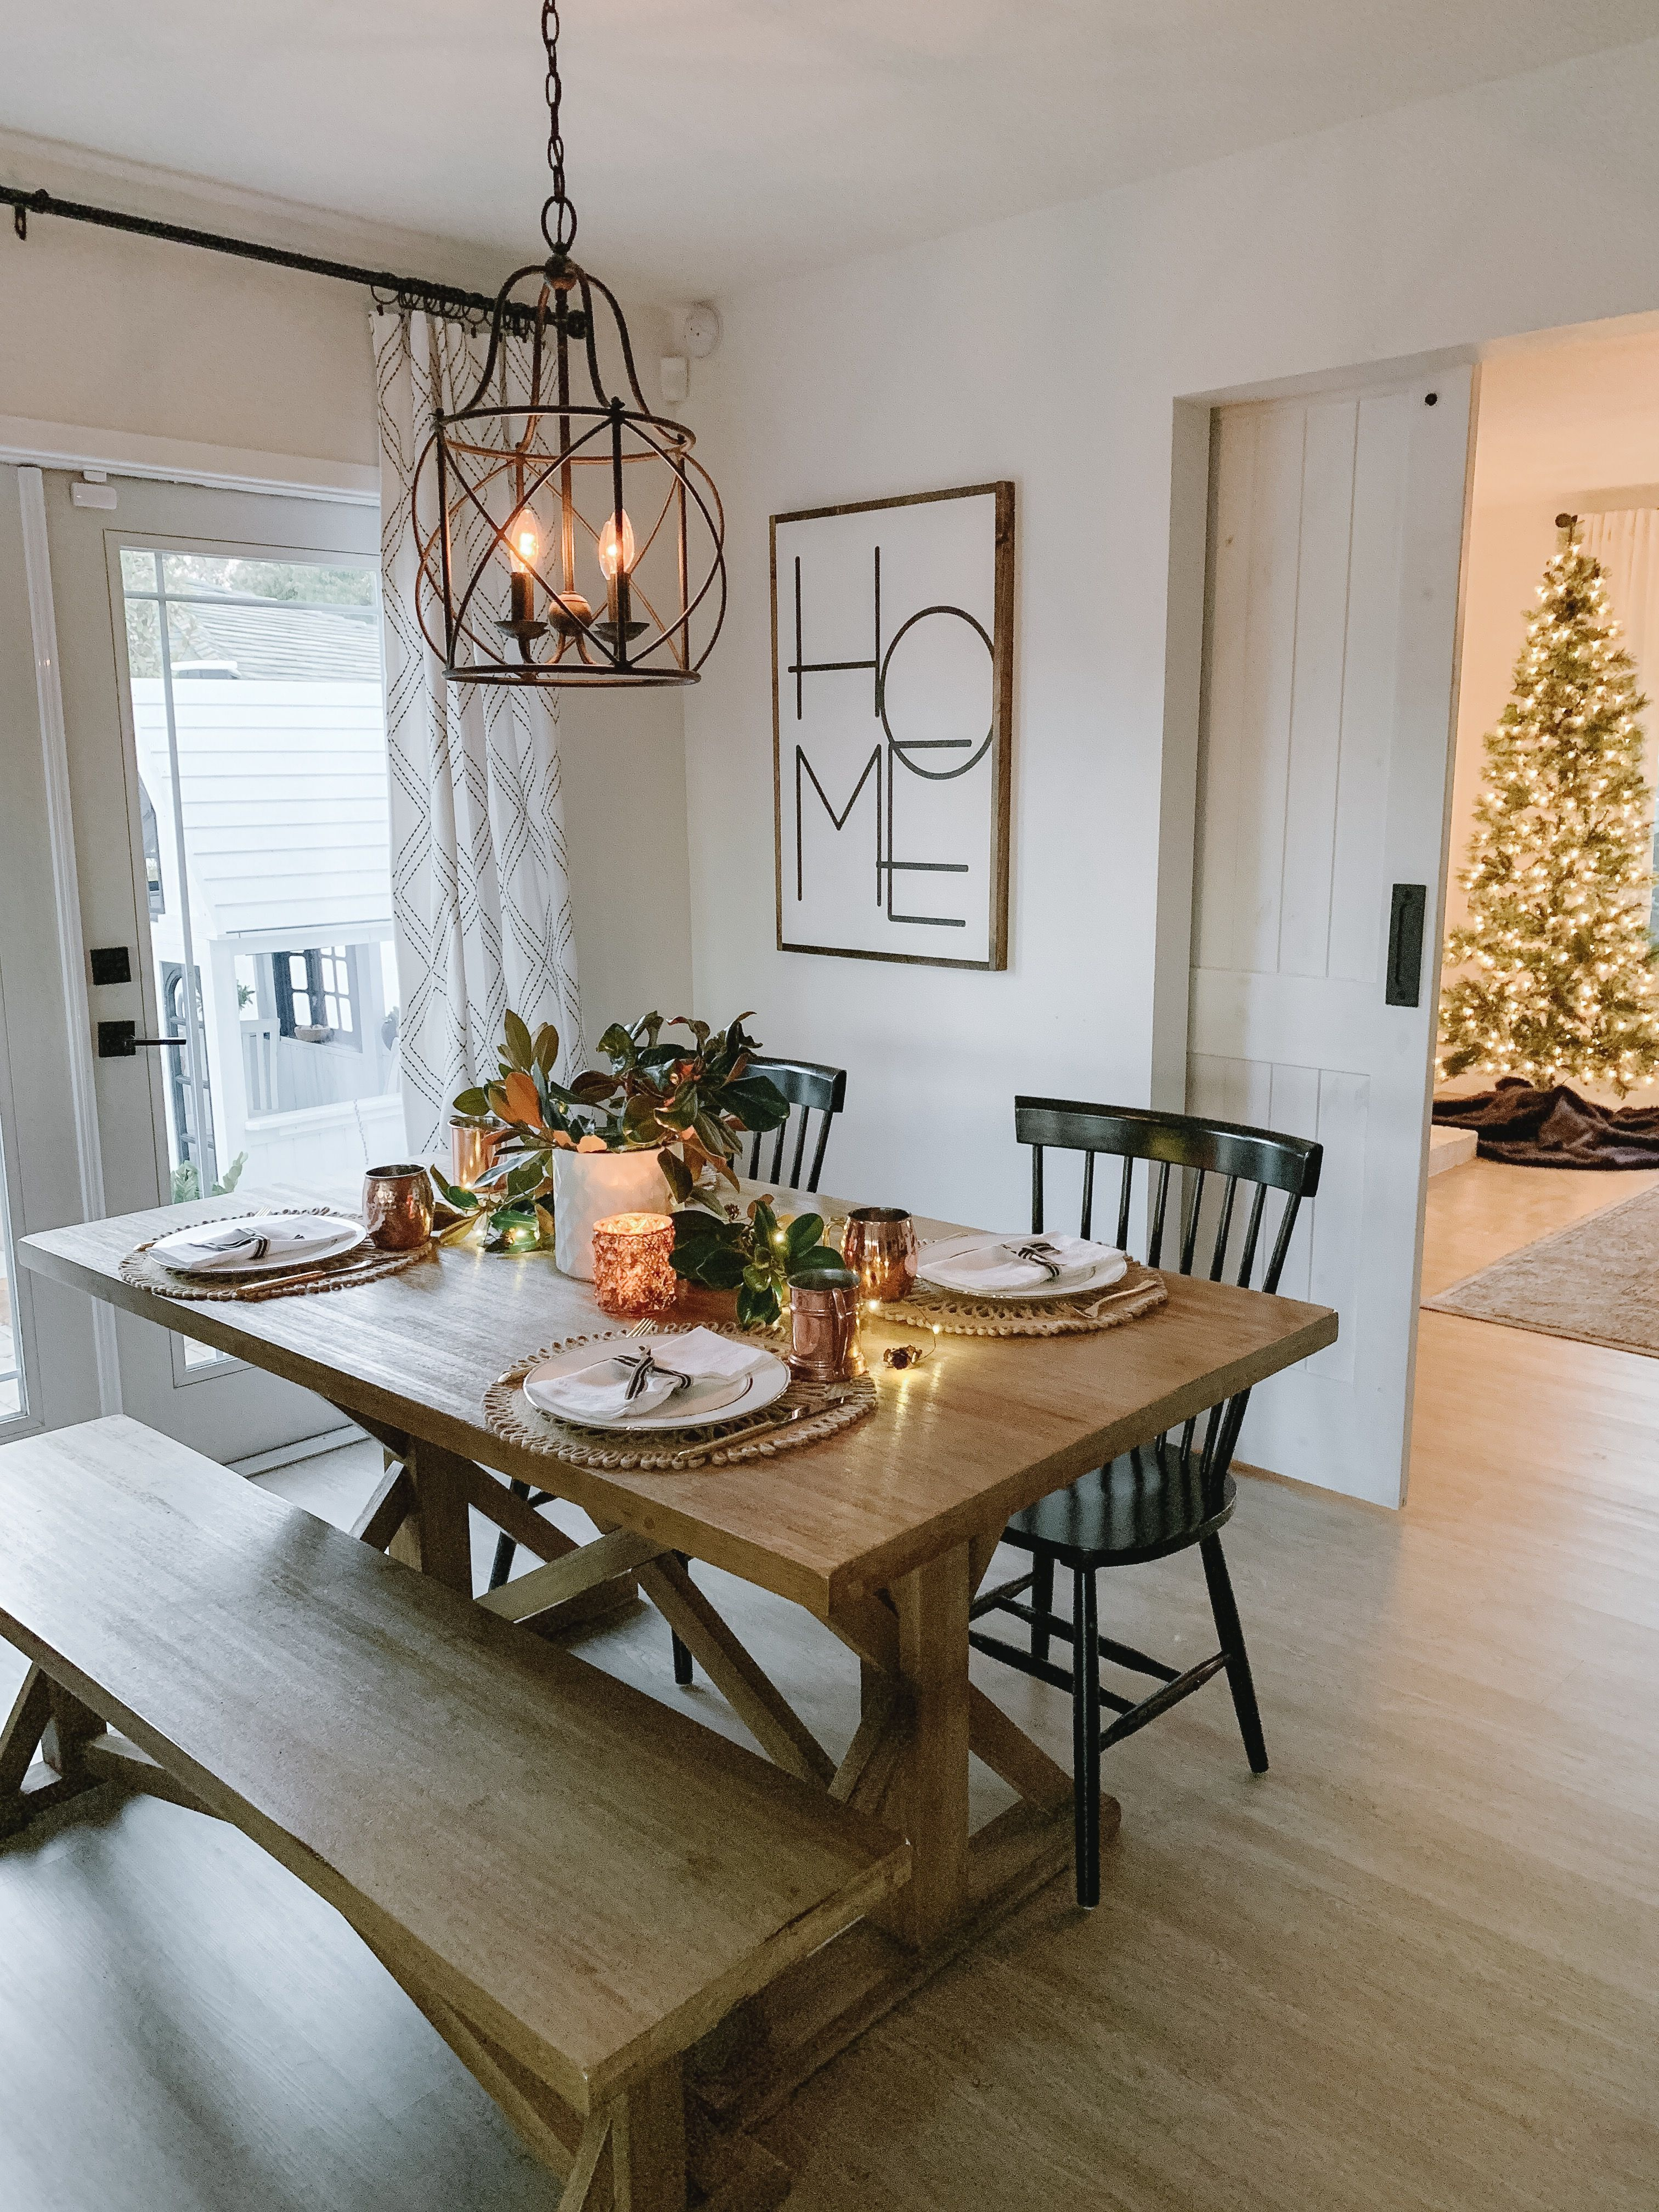 Sensational Holiday Tablescape At Twilight Magnolia Branches Copper Short Links Chair Design For Home Short Linksinfo